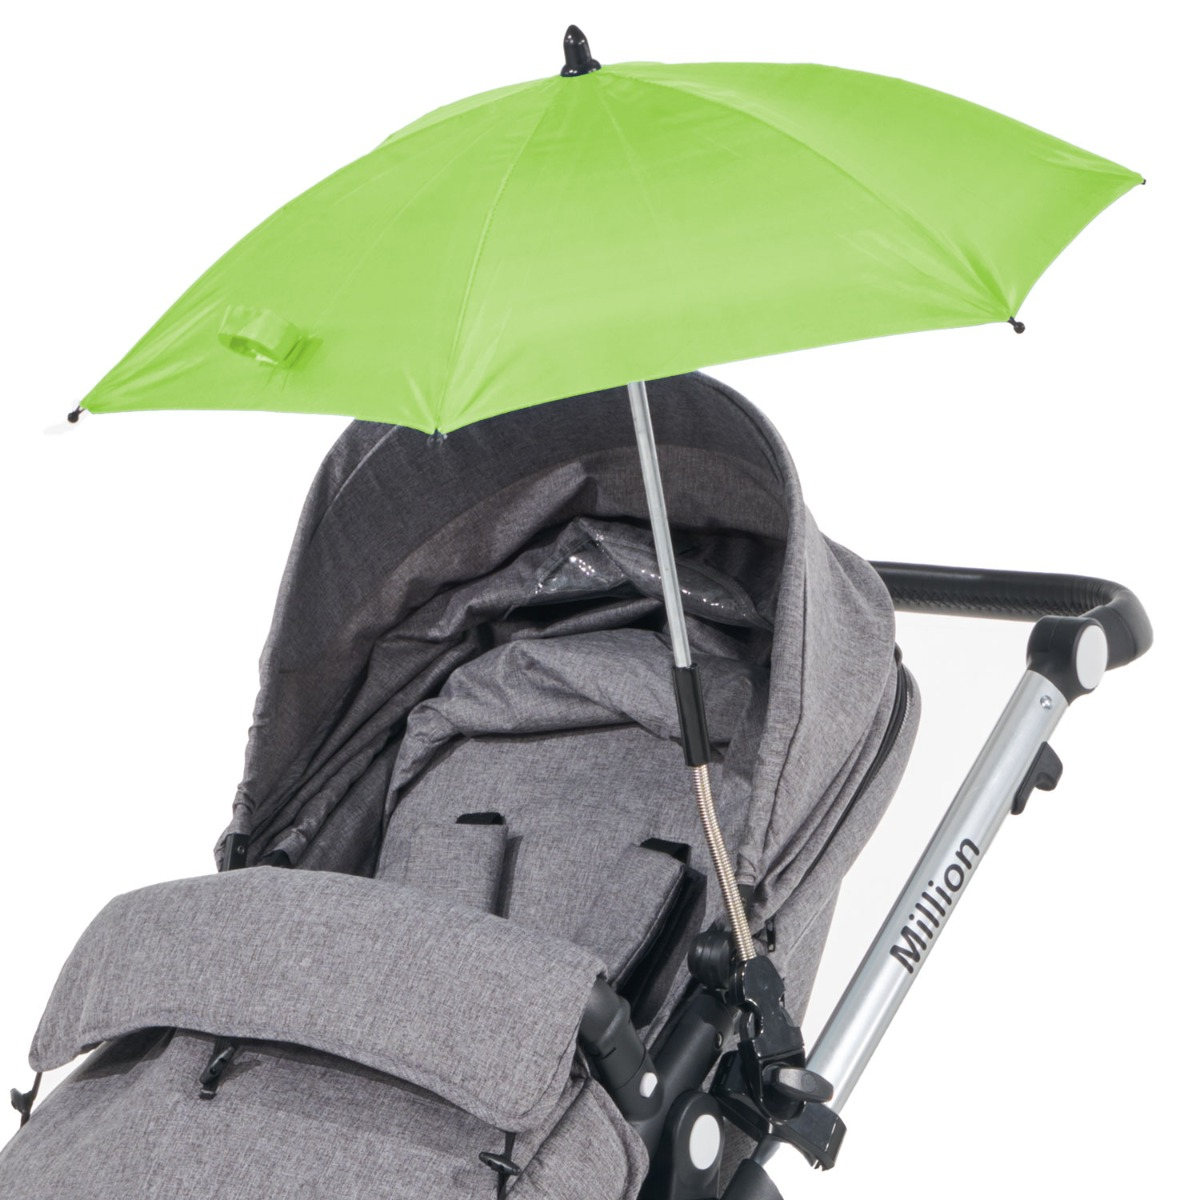 Baby-Parasol-Universal-Sun-Umbrella-Shade-Maker-Canopy-For-Pushchair-Pram-Buggy thumbnail 58